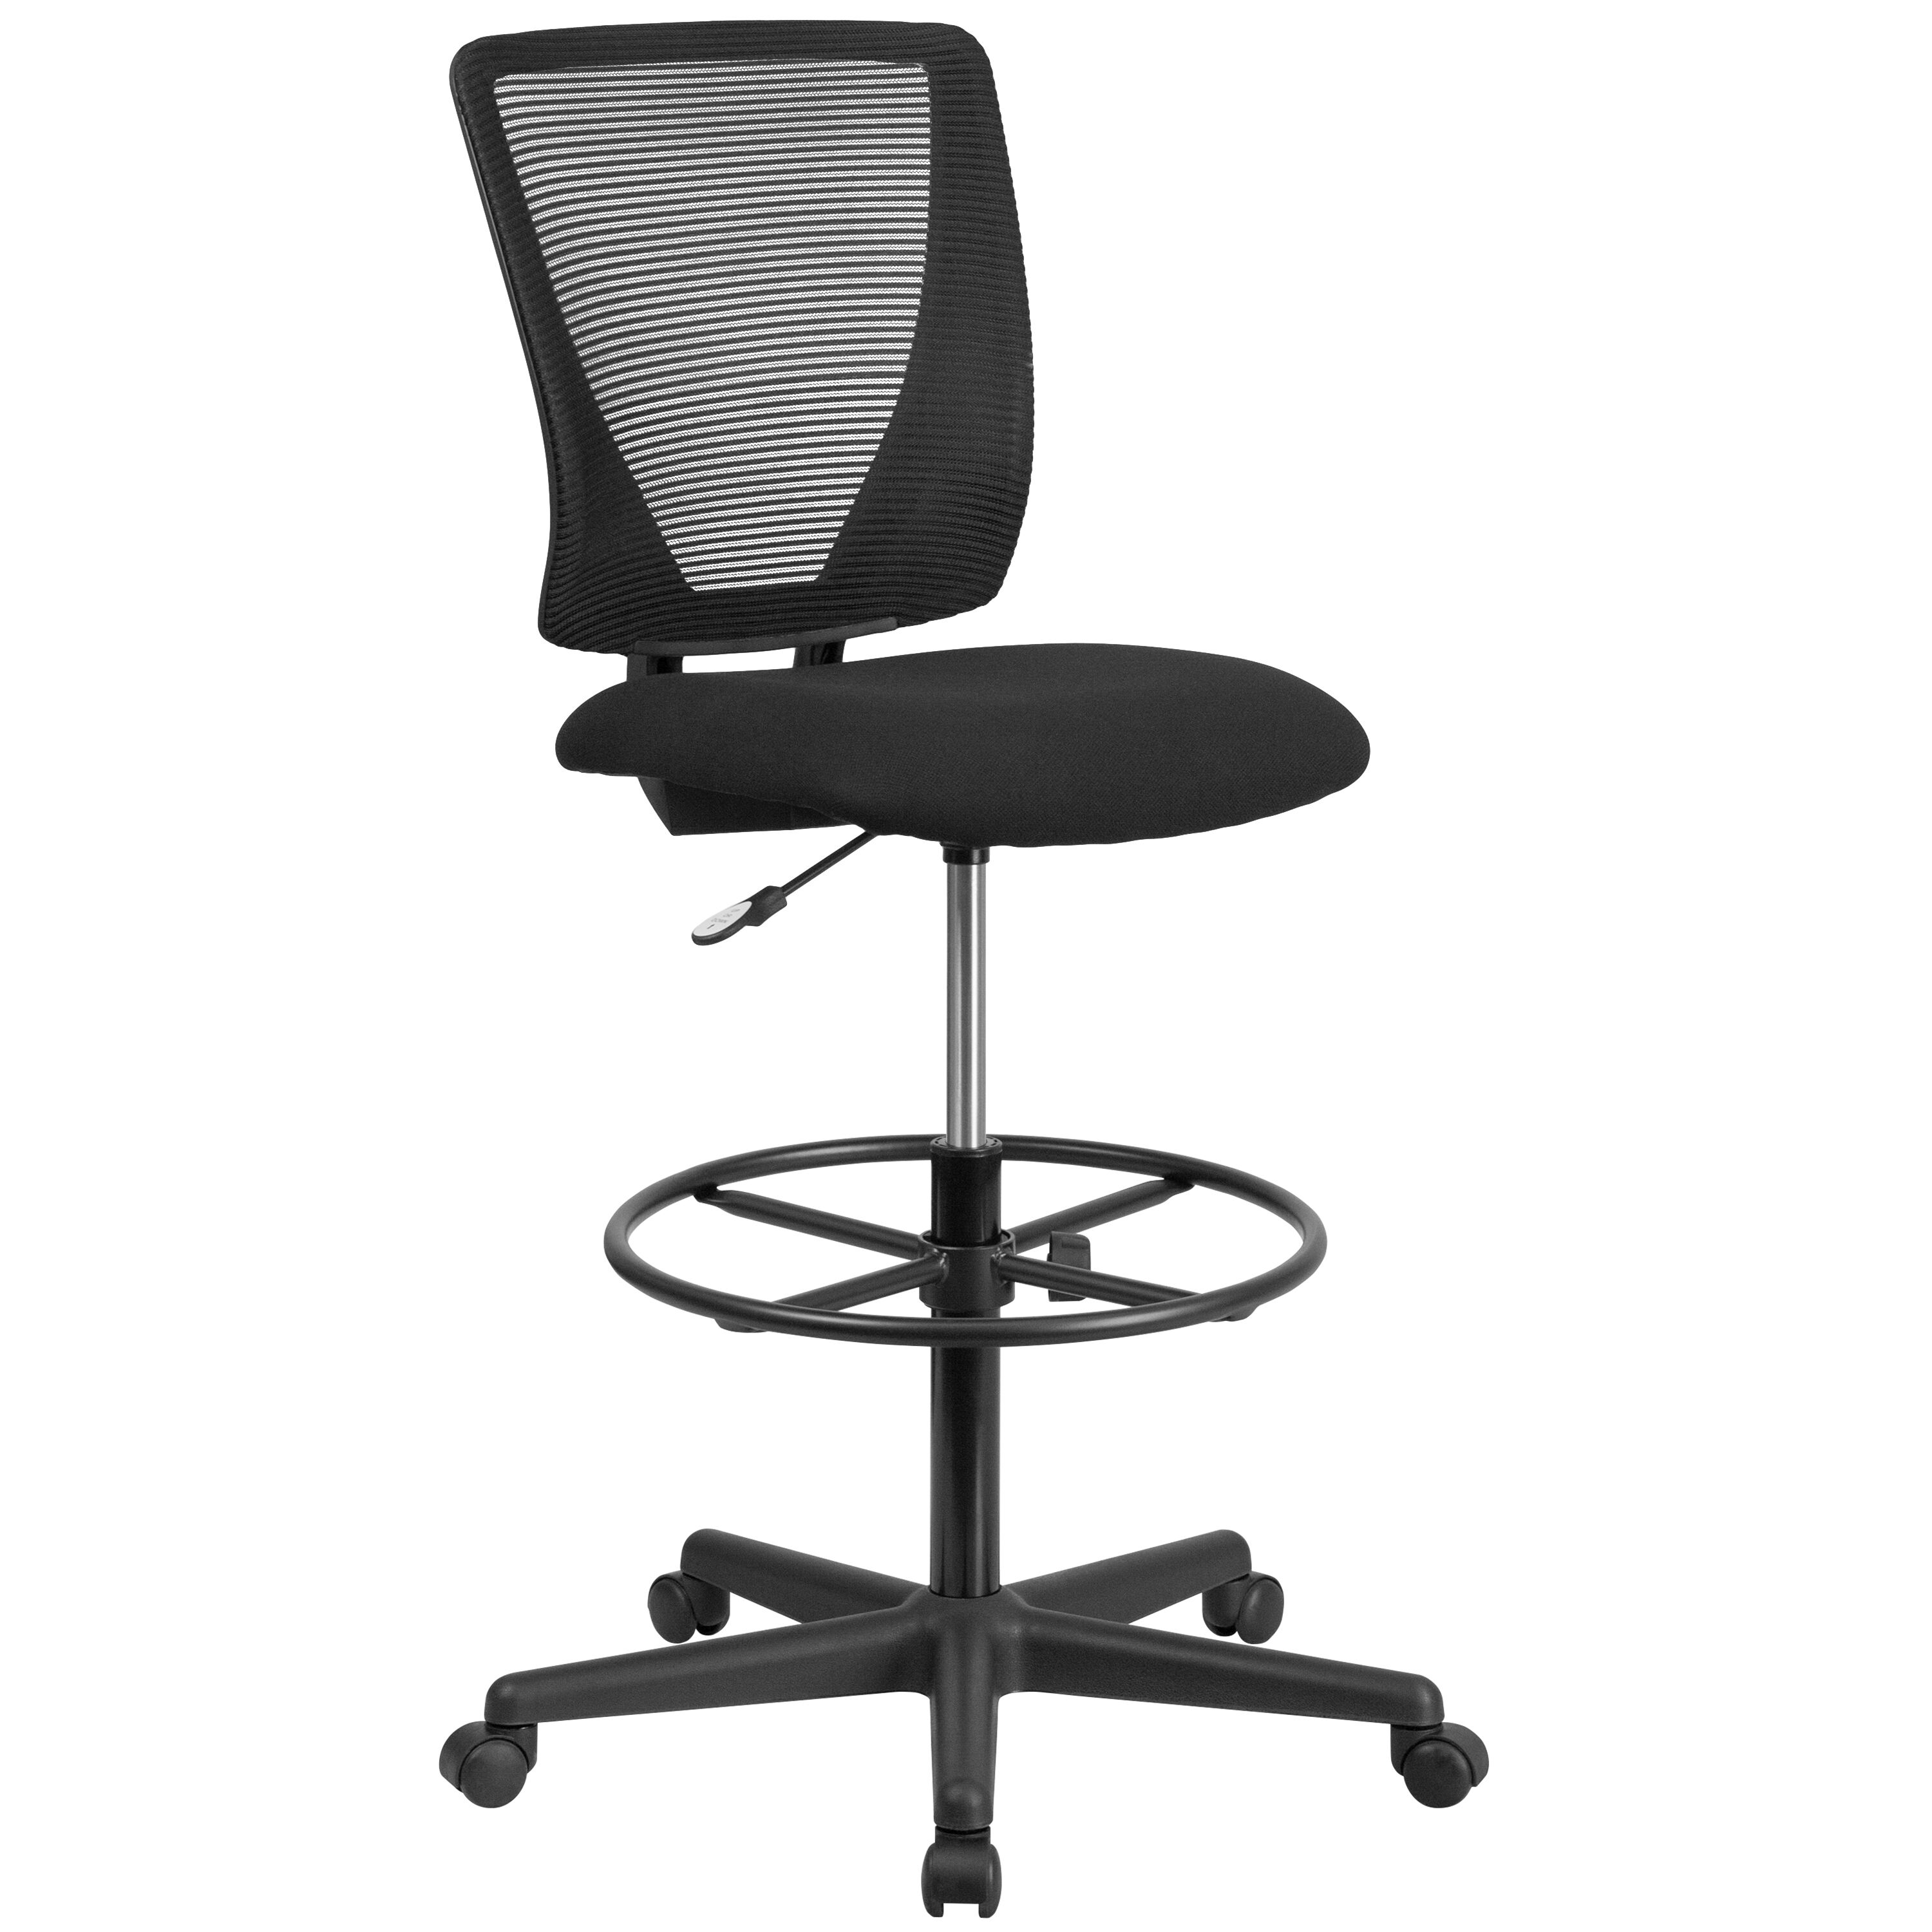 mesh drafting chair high top table chairs kitchen black draft go 2100 gg bizchair com our ergonomic mid back with fabric seat and adjustable foot ring